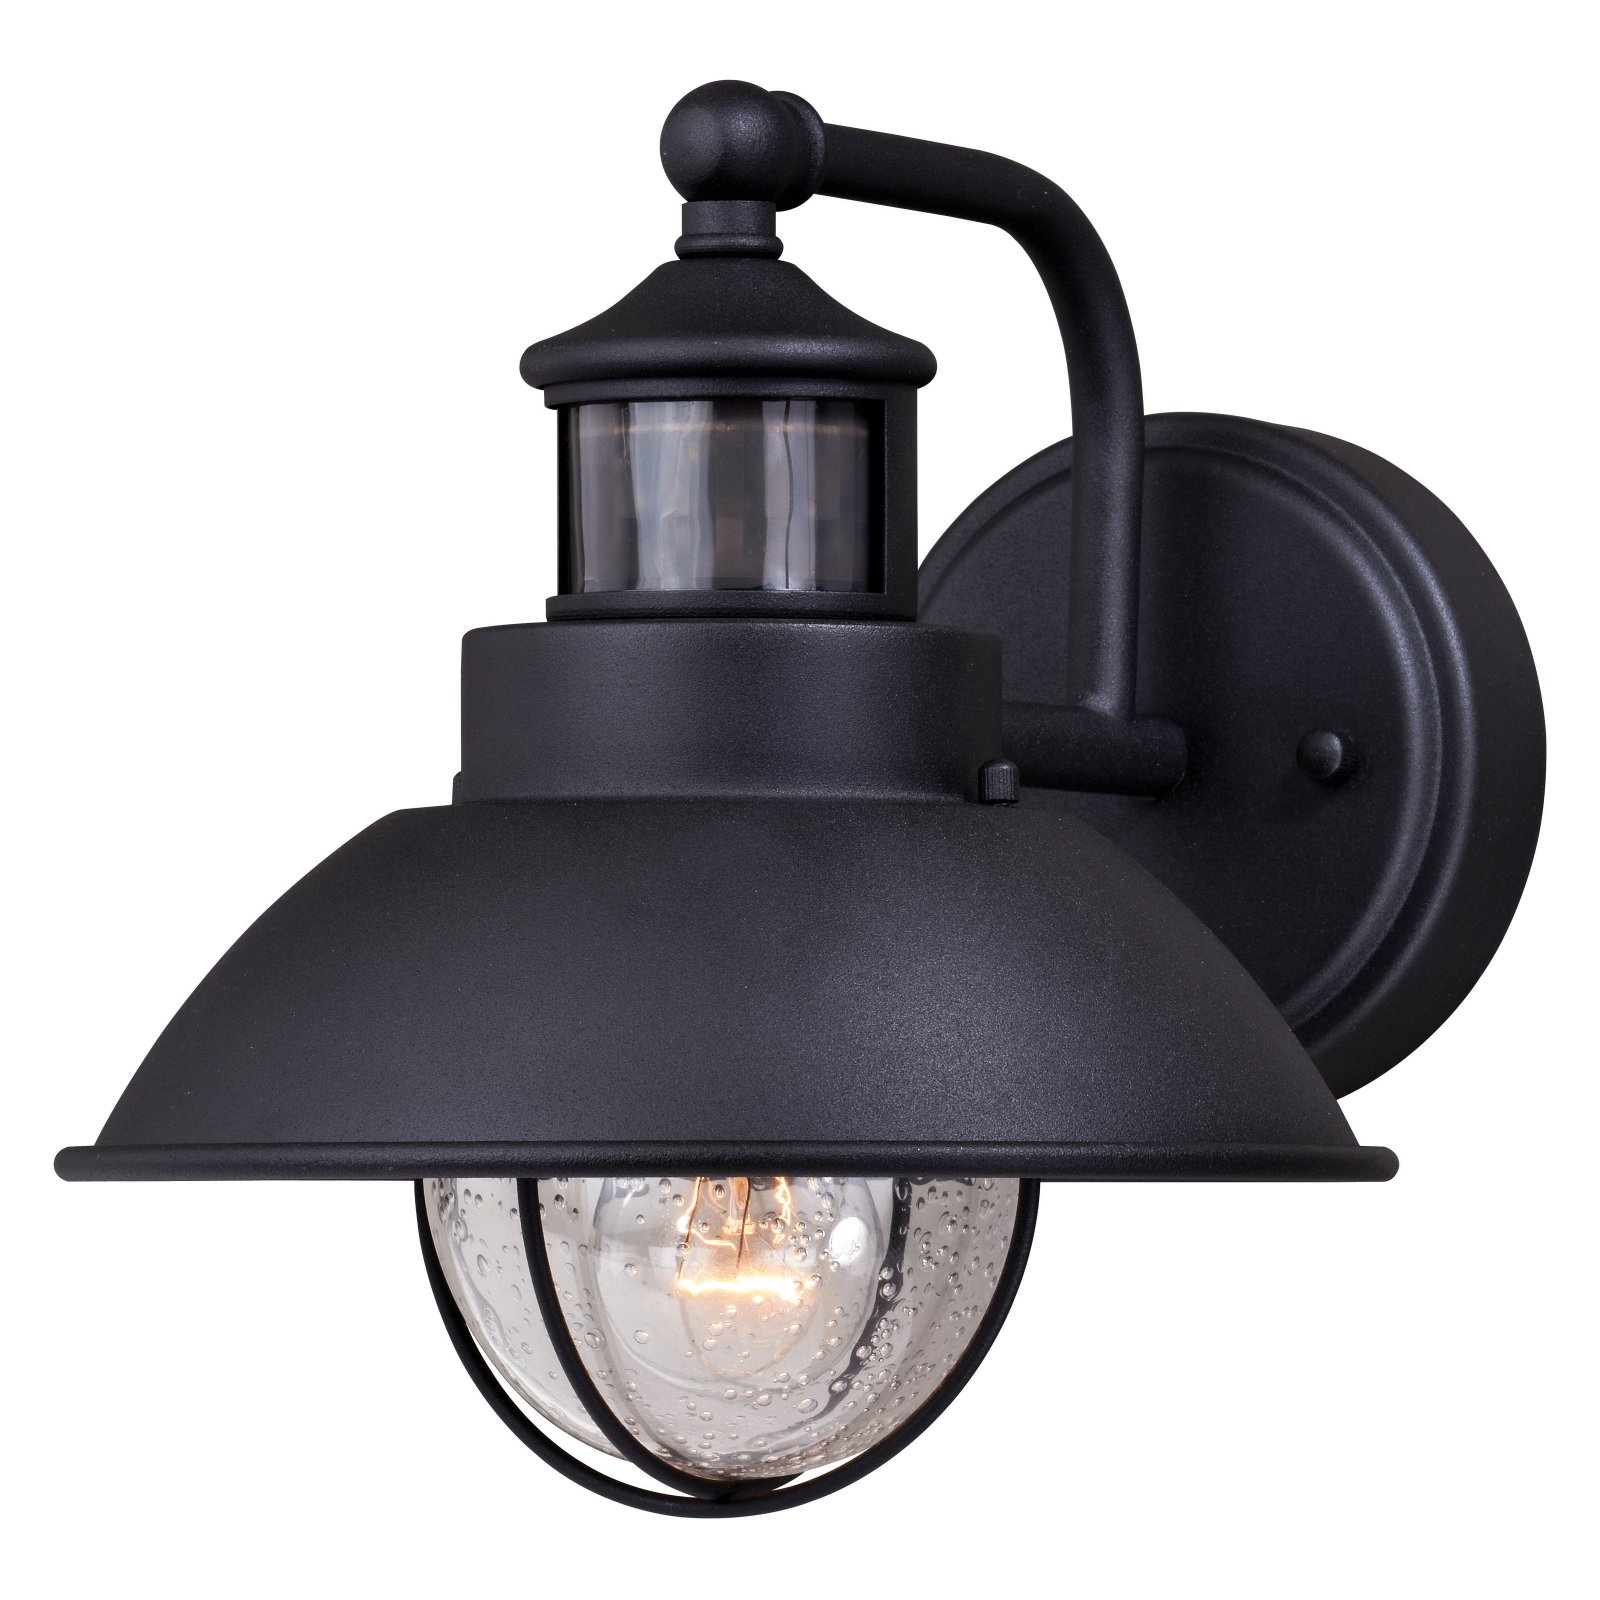 Vaxcel Harwich Dualux T026 Outdoor Wall Light